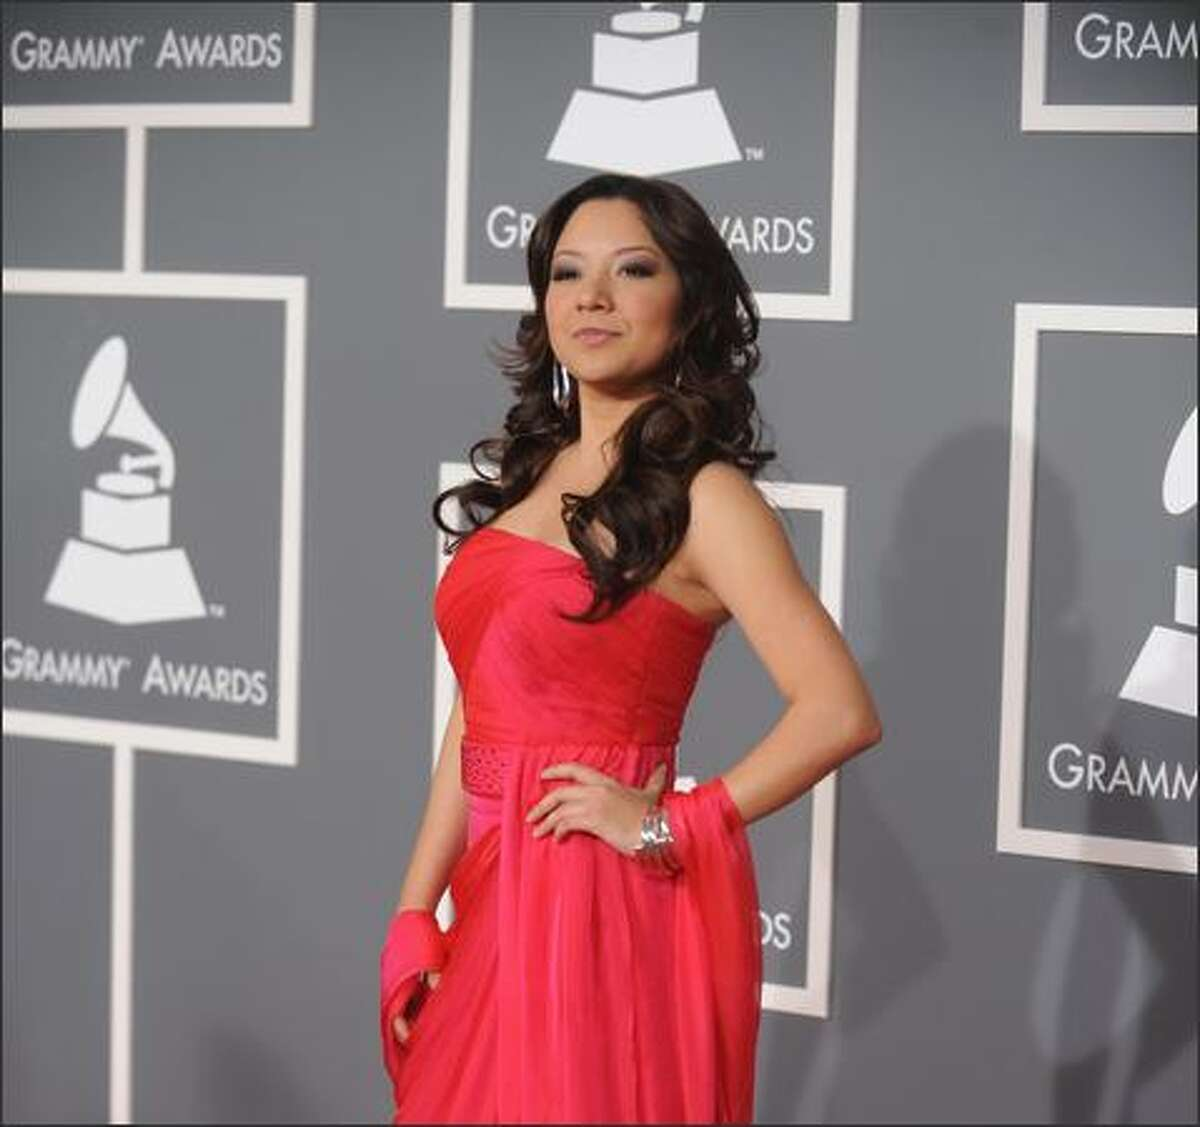 Nadia, nominated for Best Regional Mexican Album, arrives.